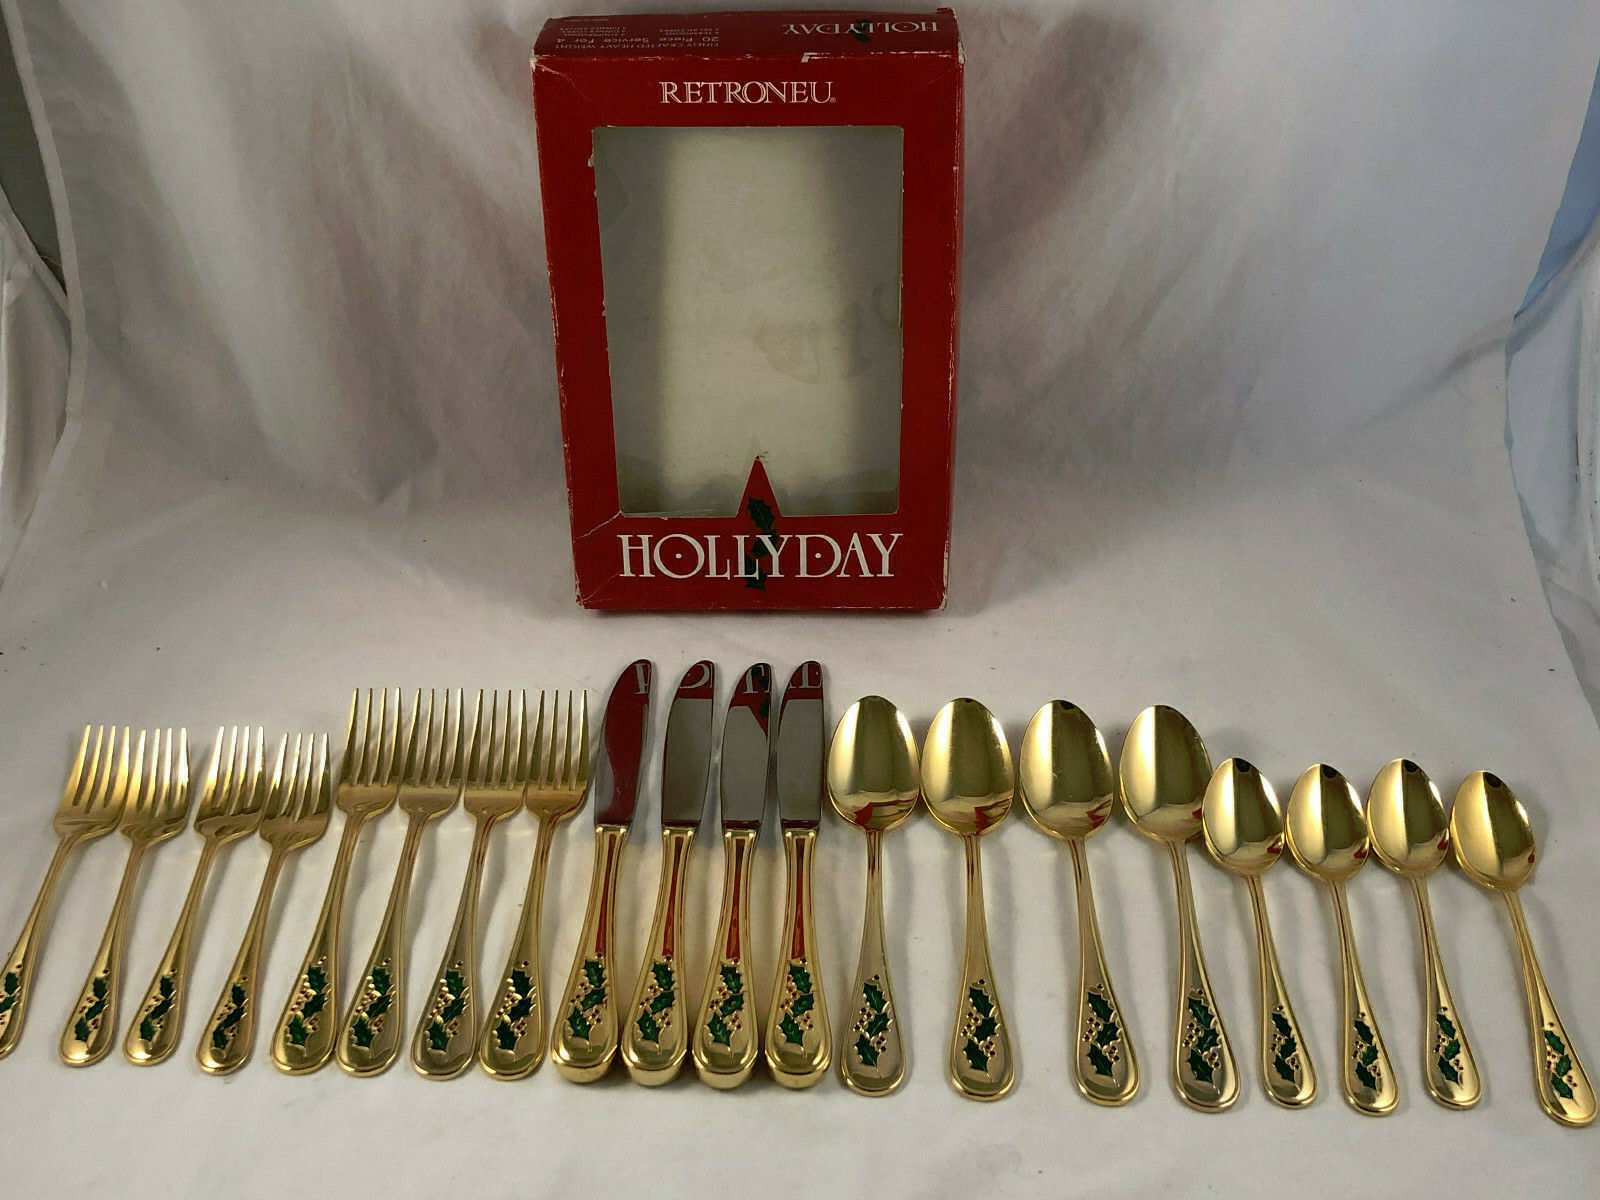 Retroneu or électroplaqué Hollyday Coutellerie quatre 5pc Couverts - 20pcs in